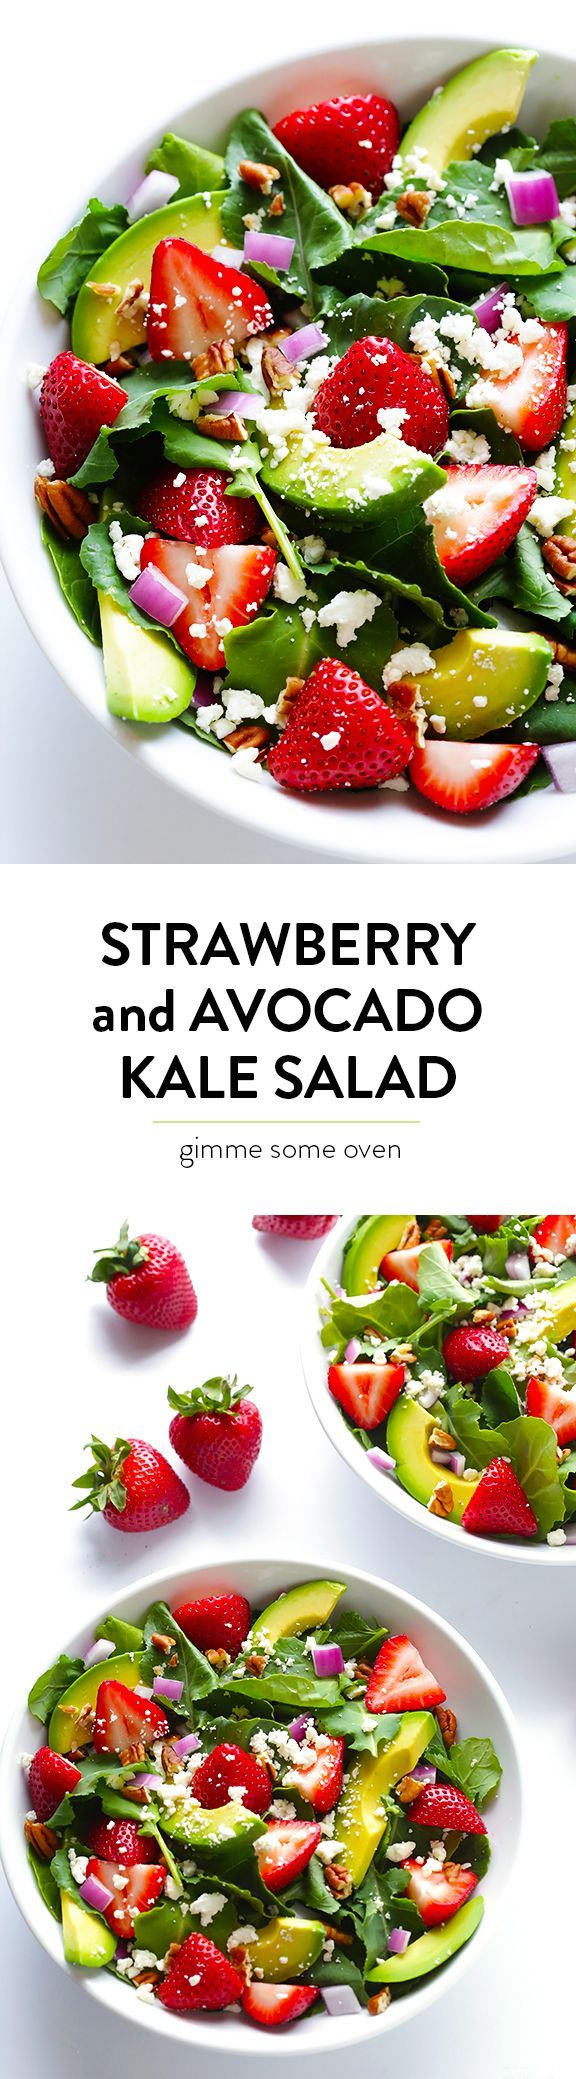 Strawberry & Avocado Kale Salad -- quick and easy to make, and always a crowd favorite!